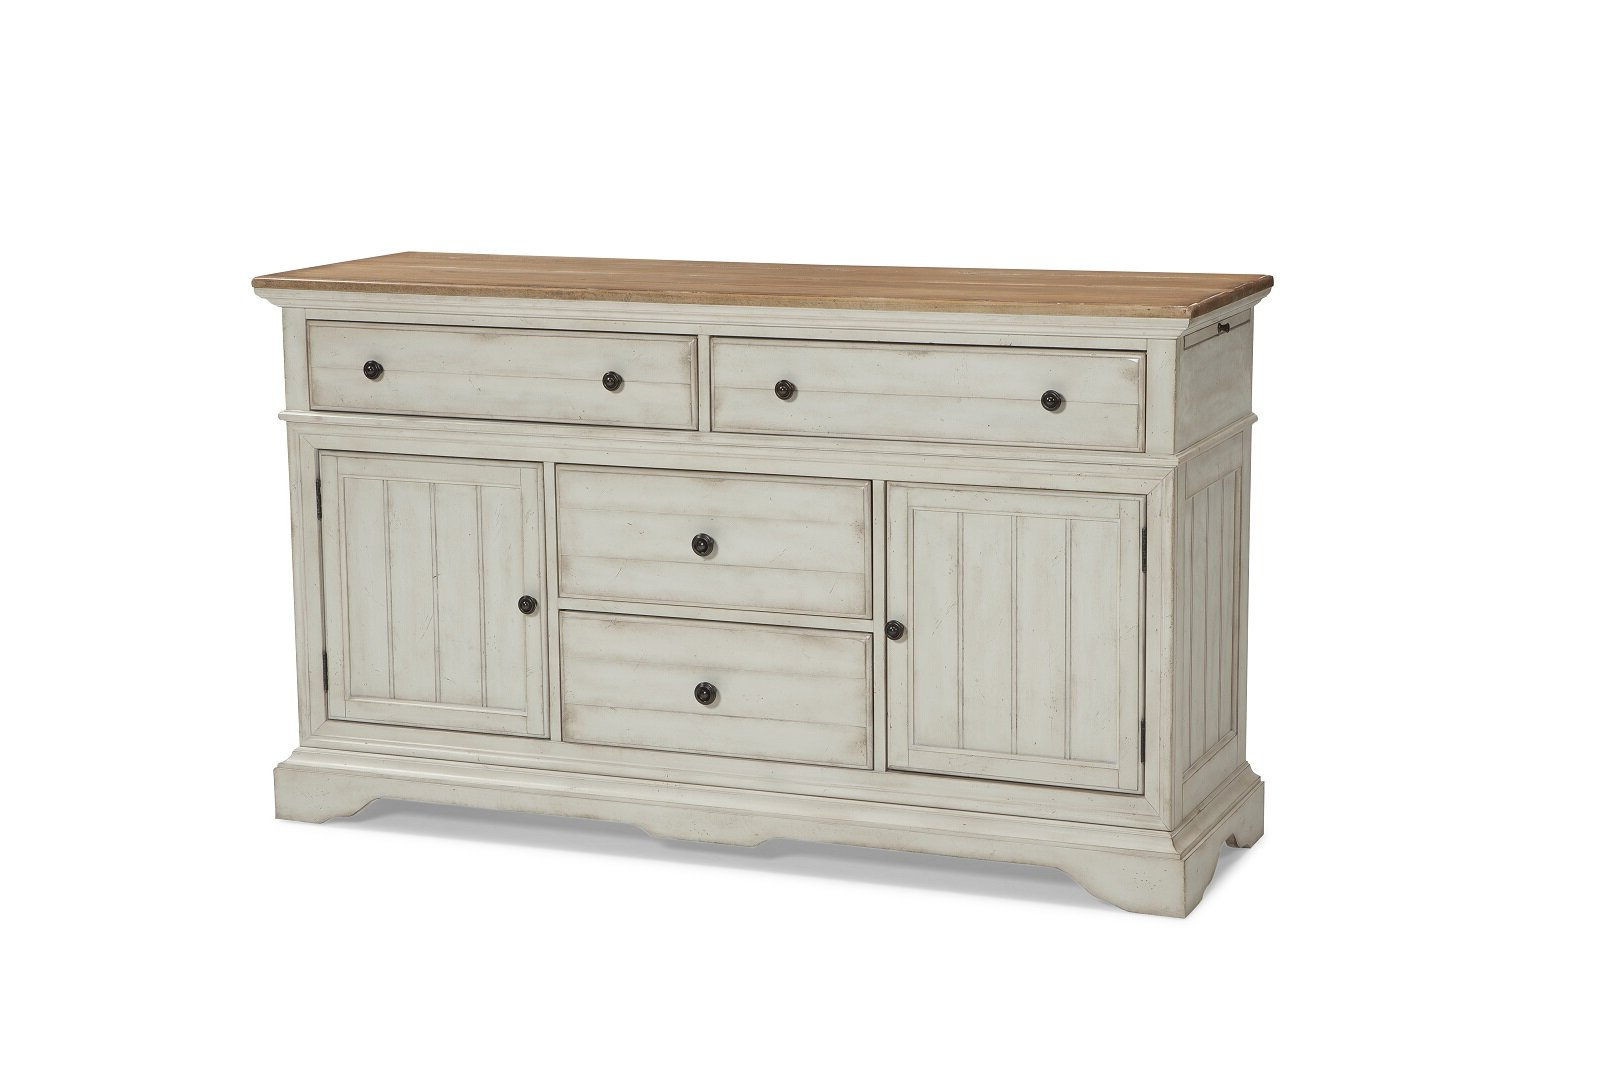 Farmhouse & Rustic Silverware Storage Equipped Sideboards Inside Payton Serving Sideboards (View 7 of 20)